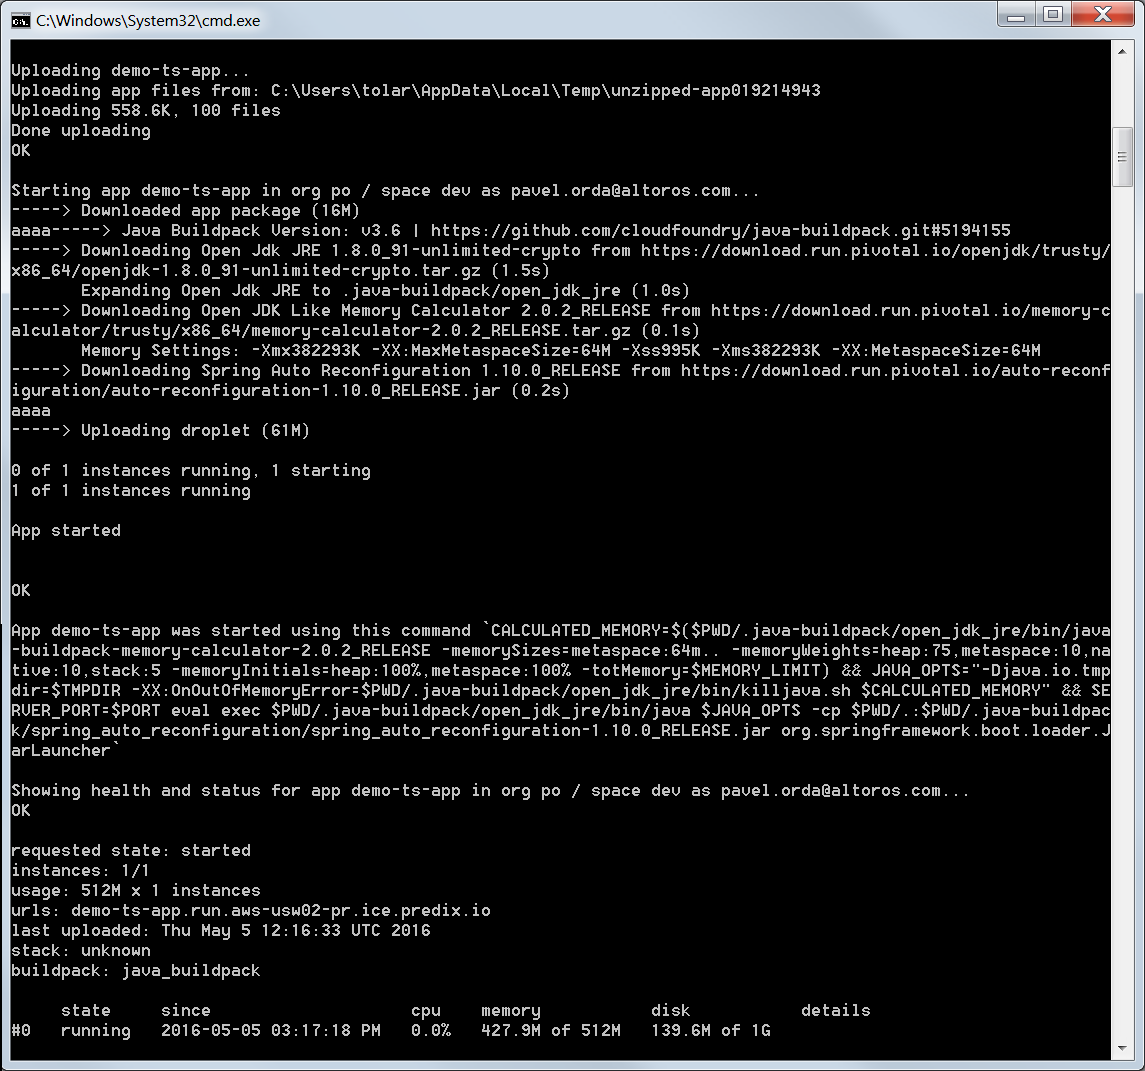 predix-time-series-spring-boot-running-the-app